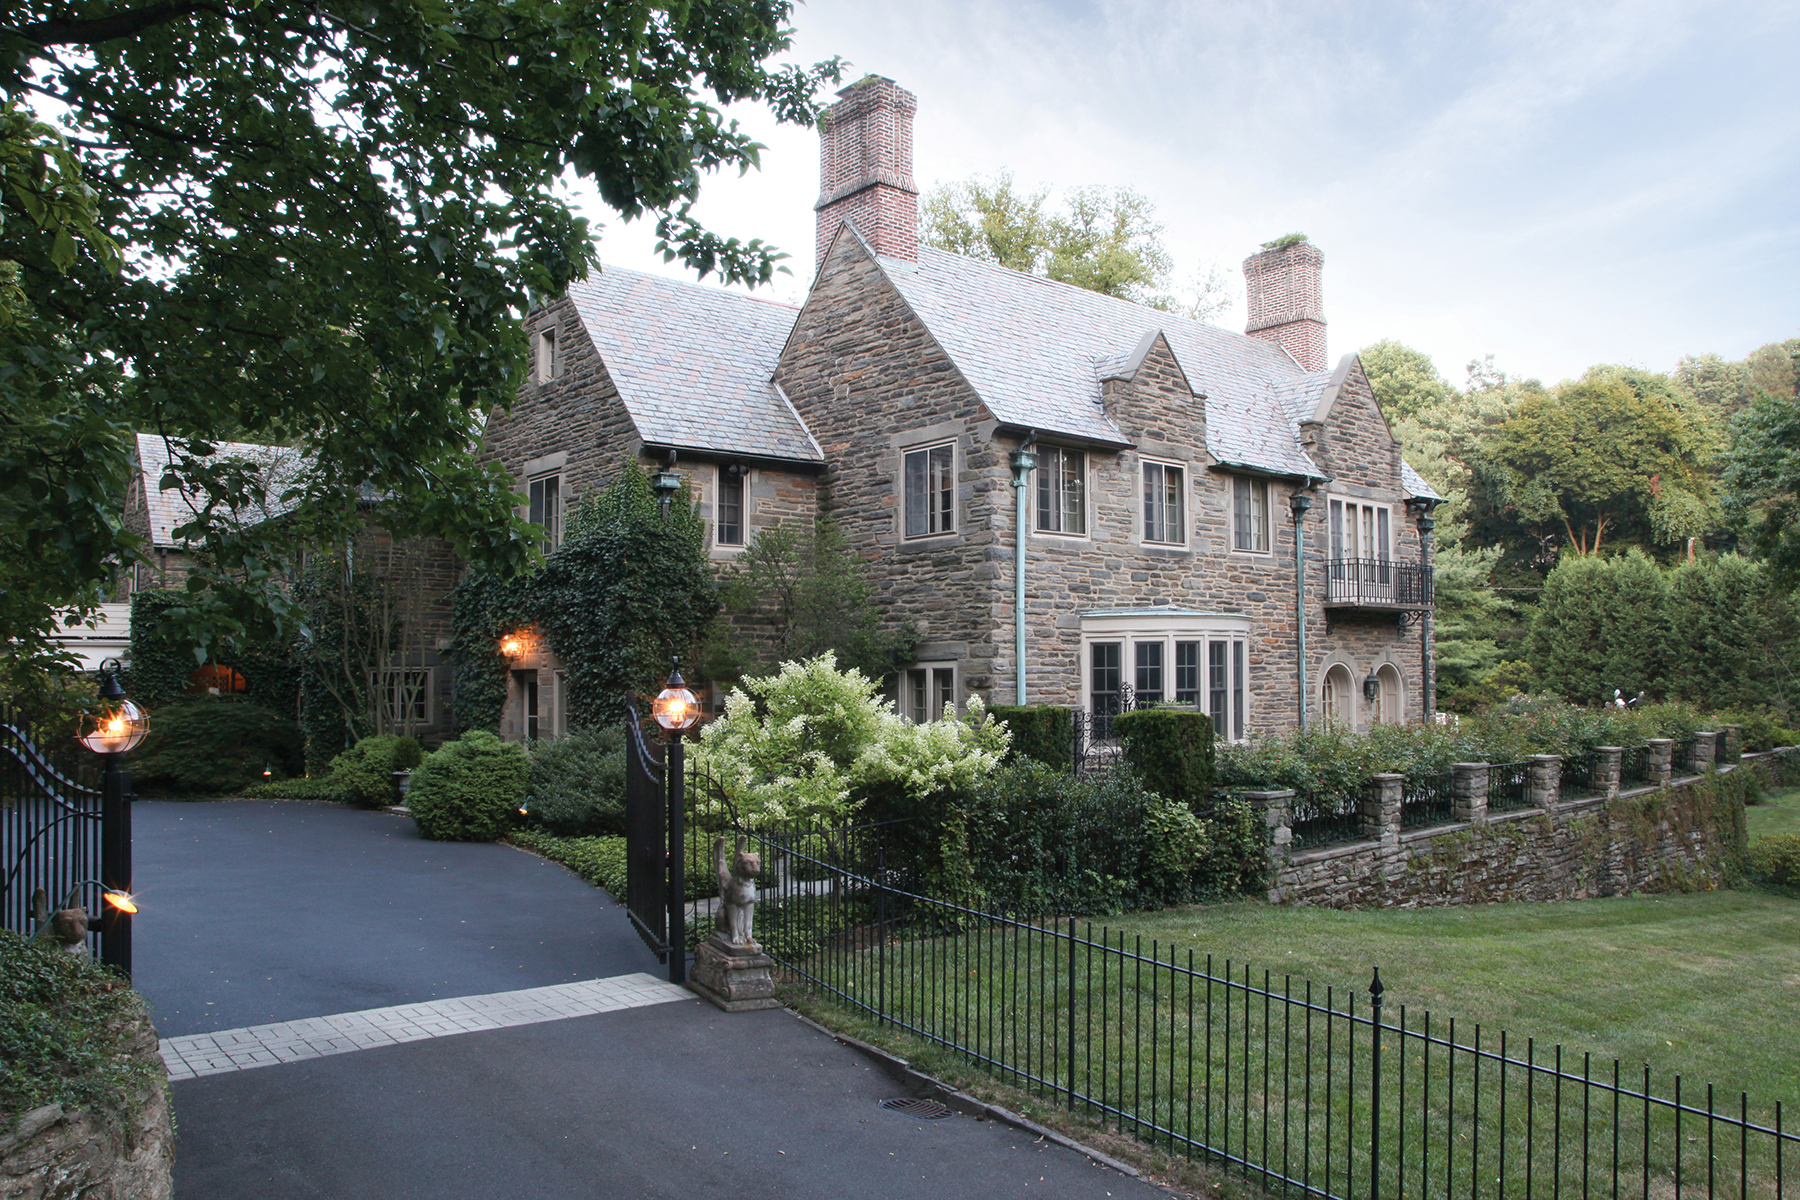 Single Family Home for Sale at English Country Manor 15 W. Bells Mill Road Chestnut Hill, Philadelphia, Pennsylvania 19118 United States